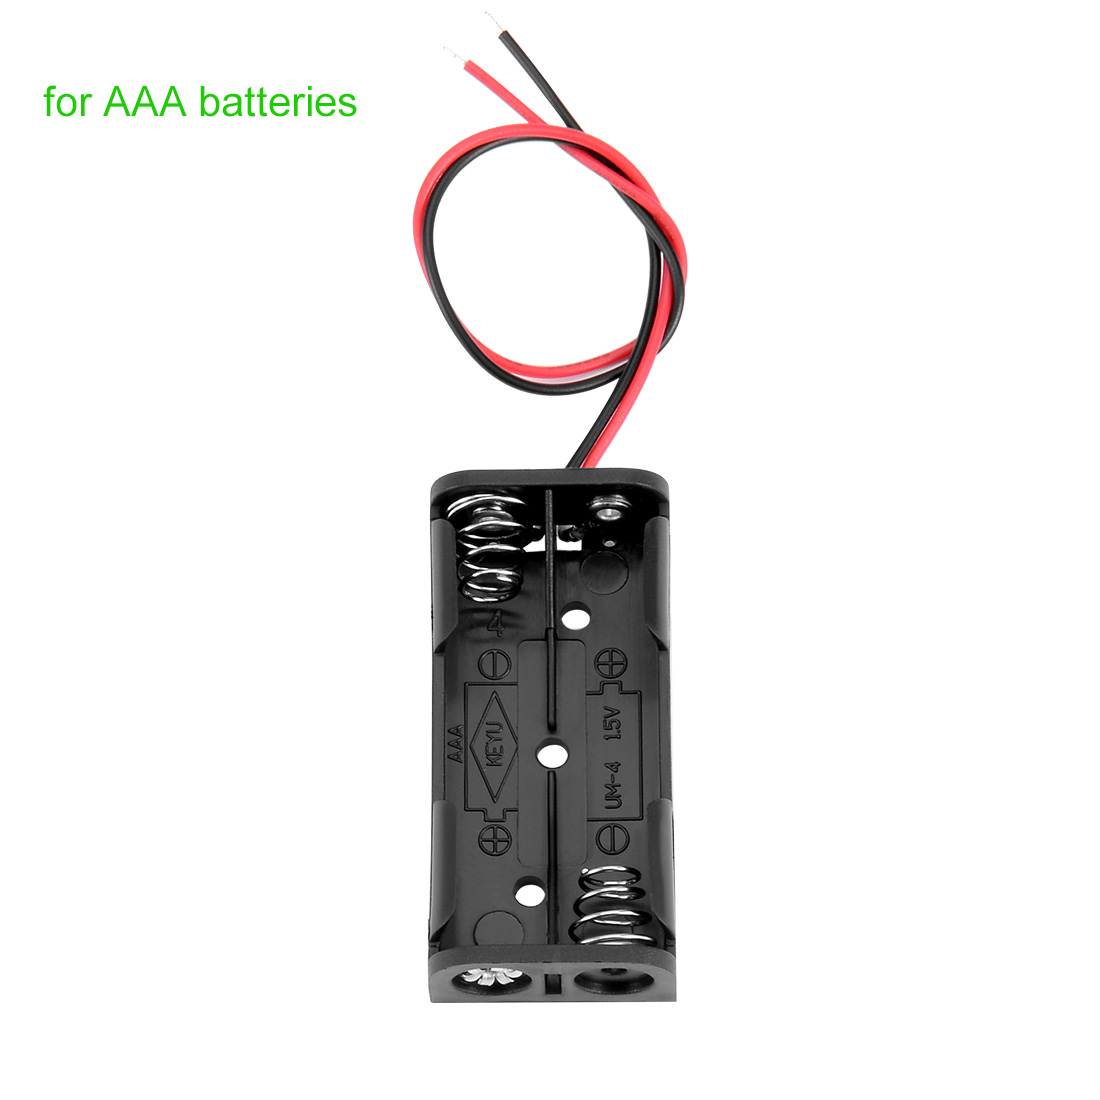 3V Battery Holder Case Storage Box 2 x 1.5V AAA Batteries Wire Leads 10pcs - image 1 of 4